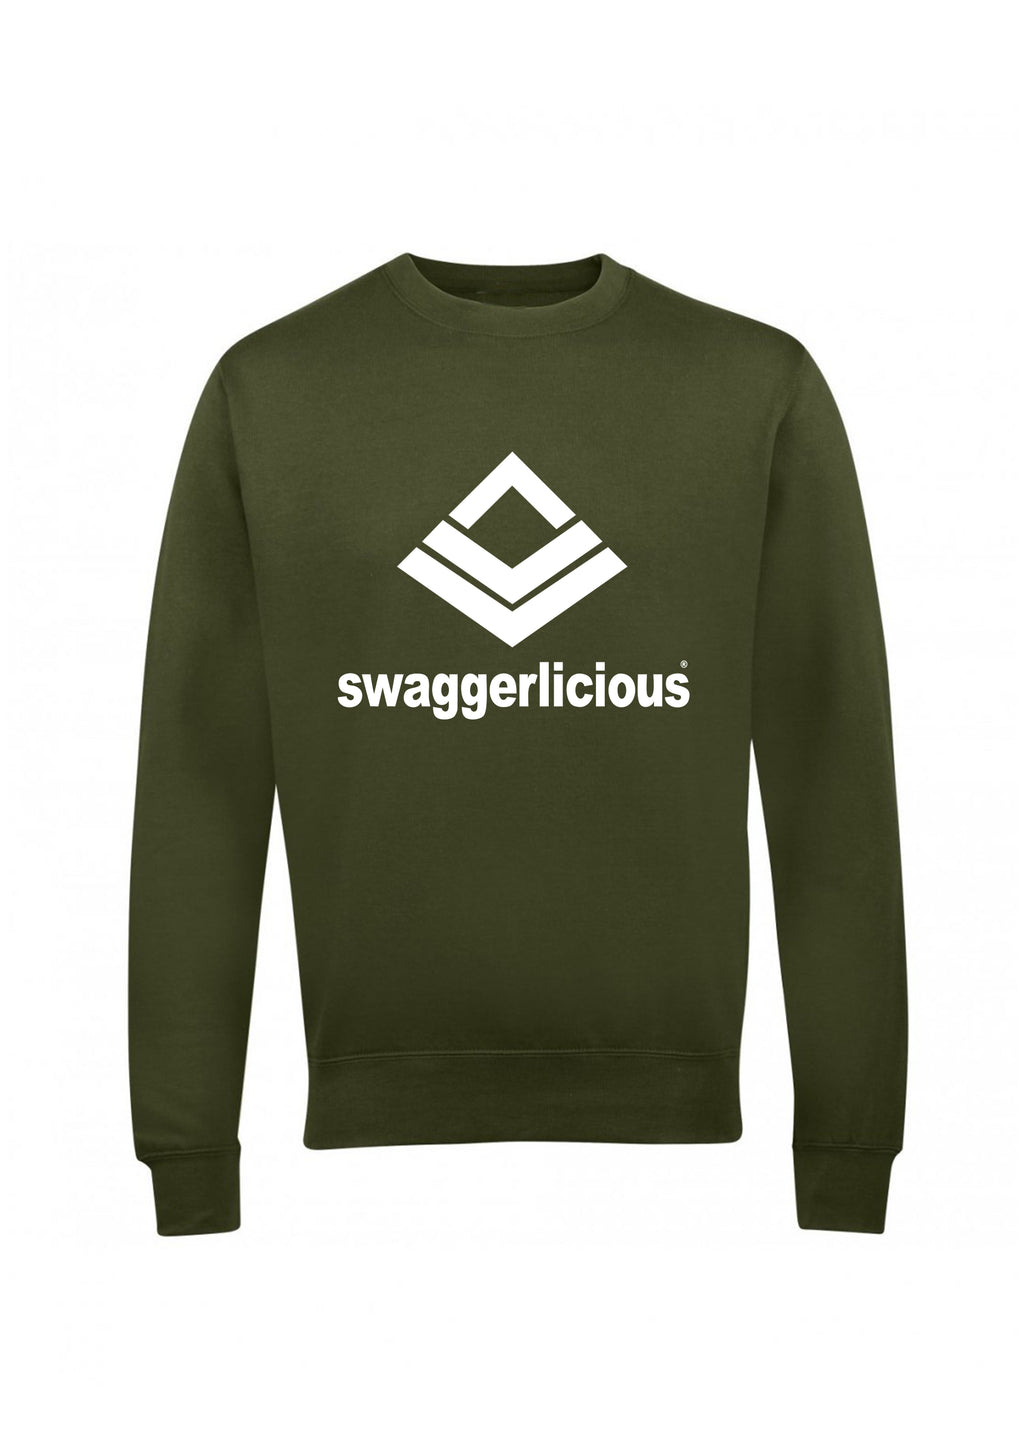 Swaggerlicious Classic Sports Olive Green Sweatshirt - swaggerlicious-clothing.com